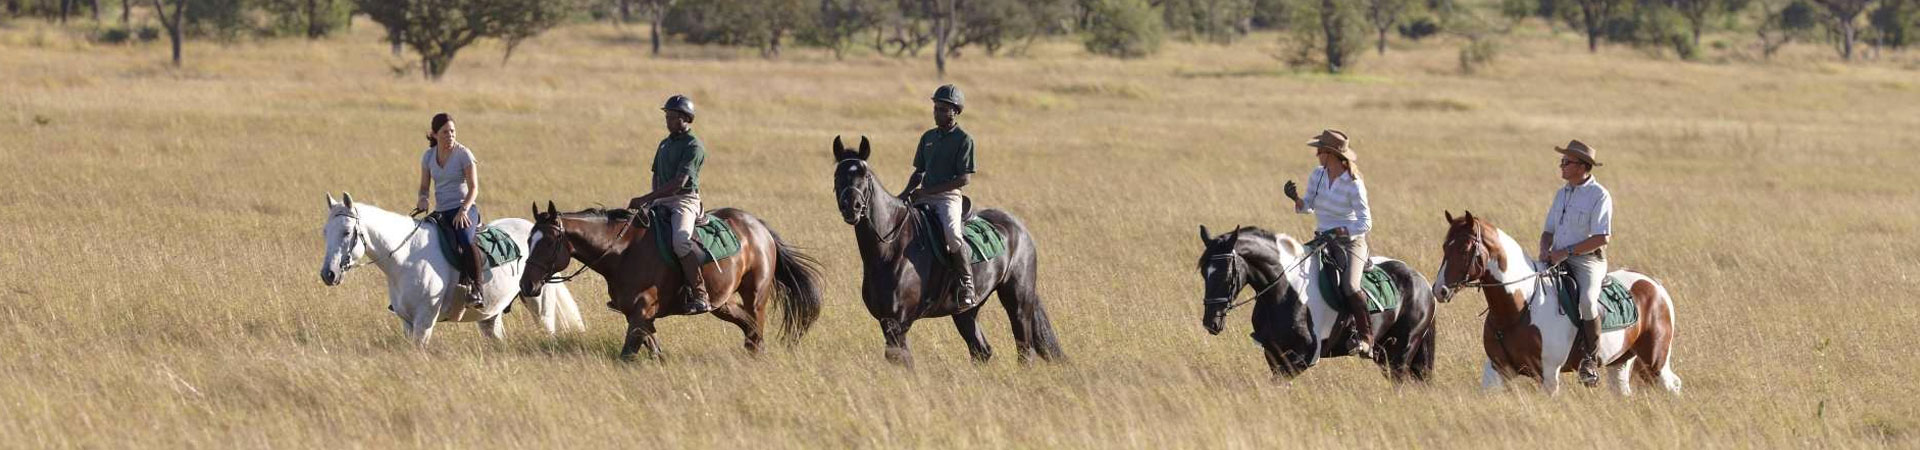 8-Days-Kenya-Masai-Mara-Horse-Riding